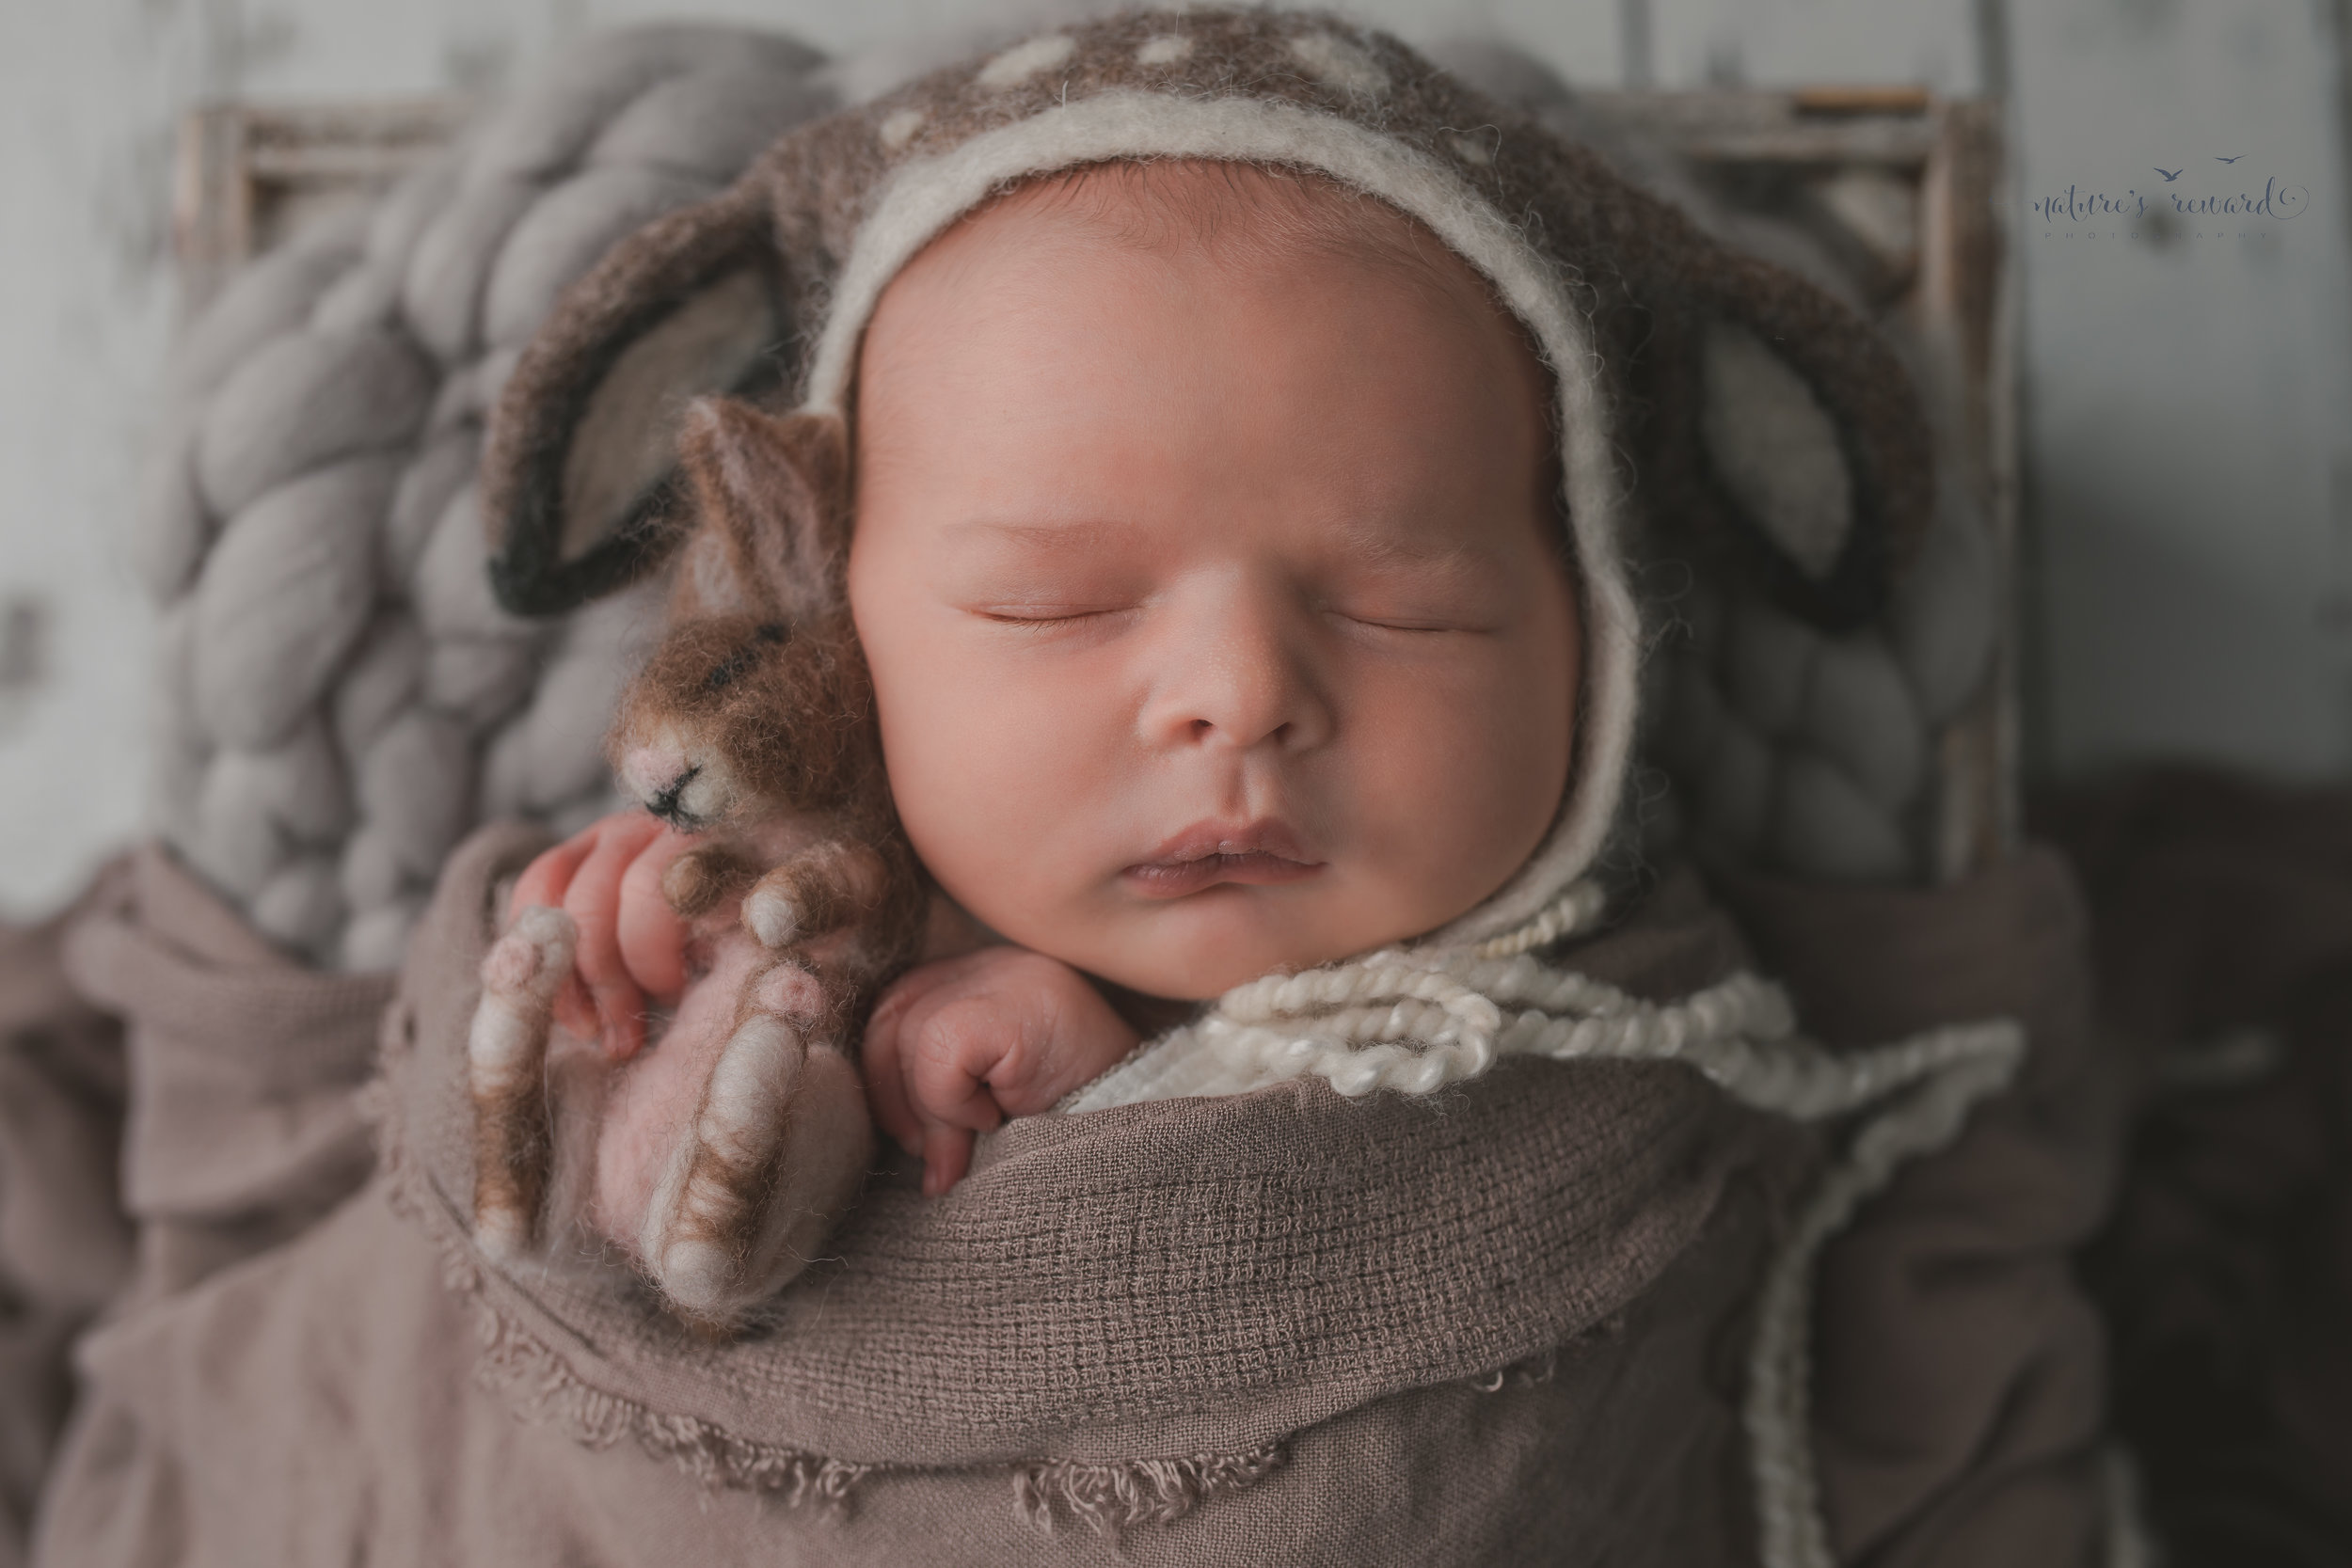 Newborn baby boy swaddled brown wearing a deer bonnet holding a bunny, on a white wood floor, resting in a box, a portrait by Nature's Reward Photography